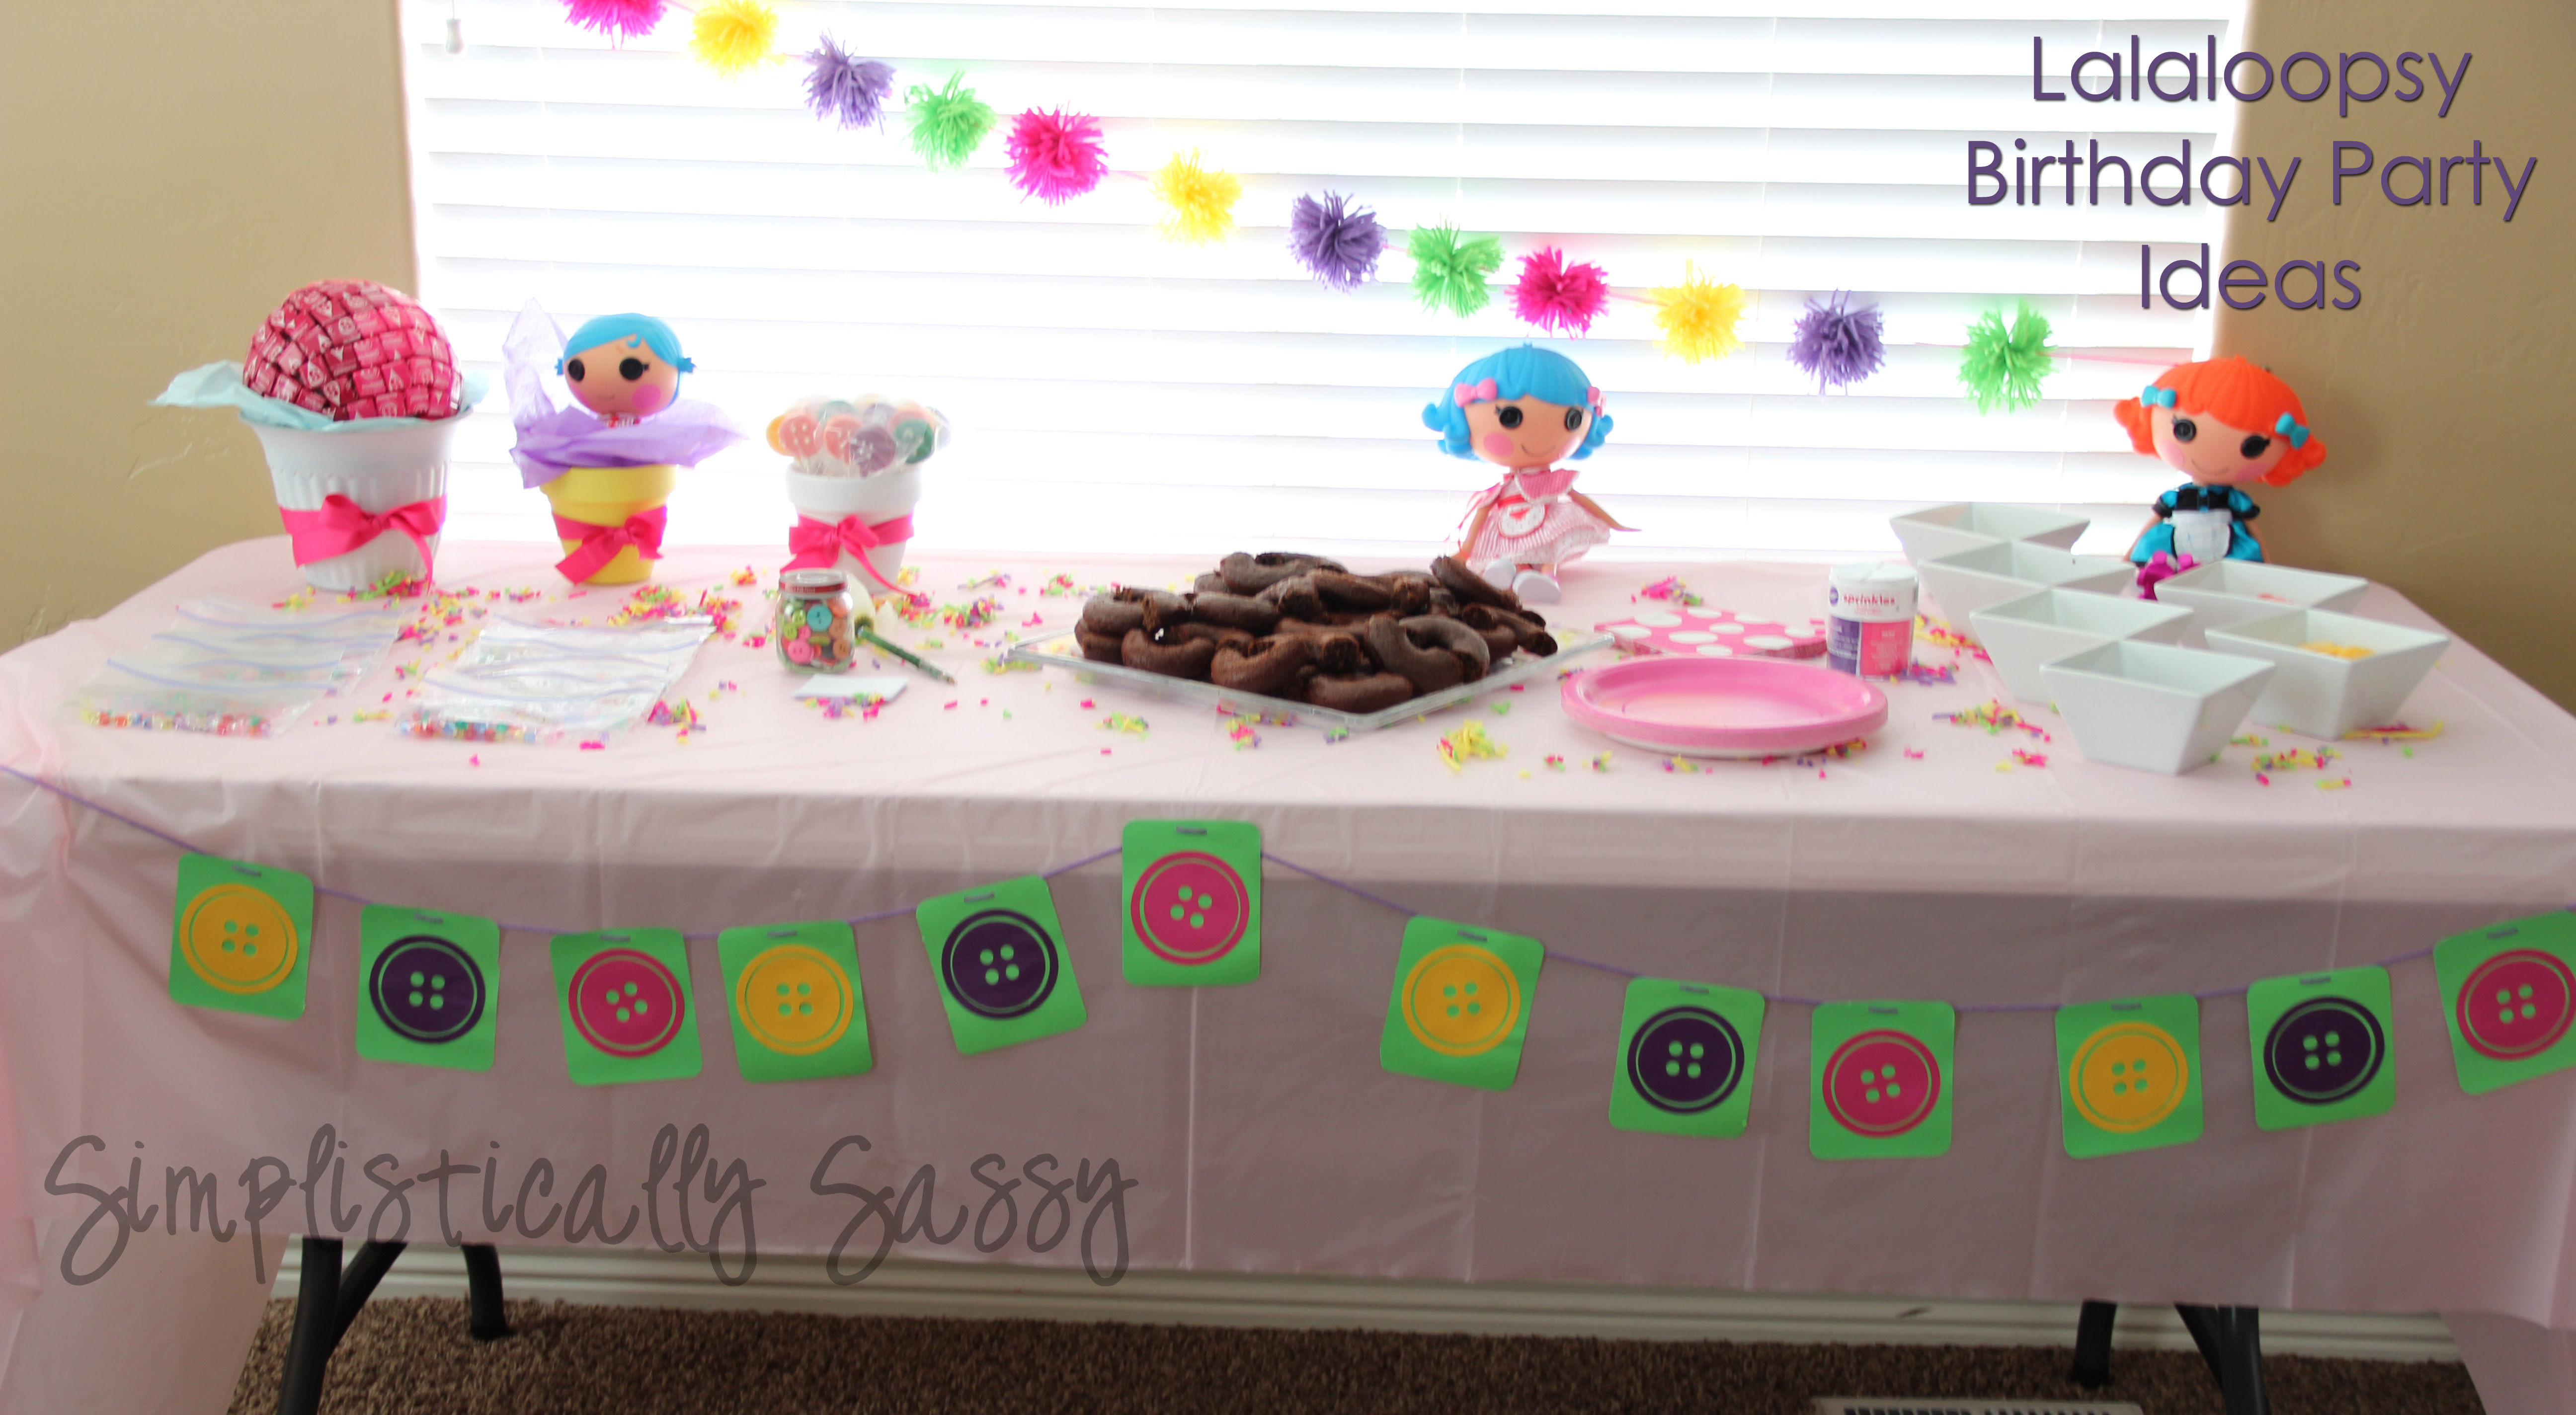 Lalaloopsy Themed Birthday Party events to CELEBRATE